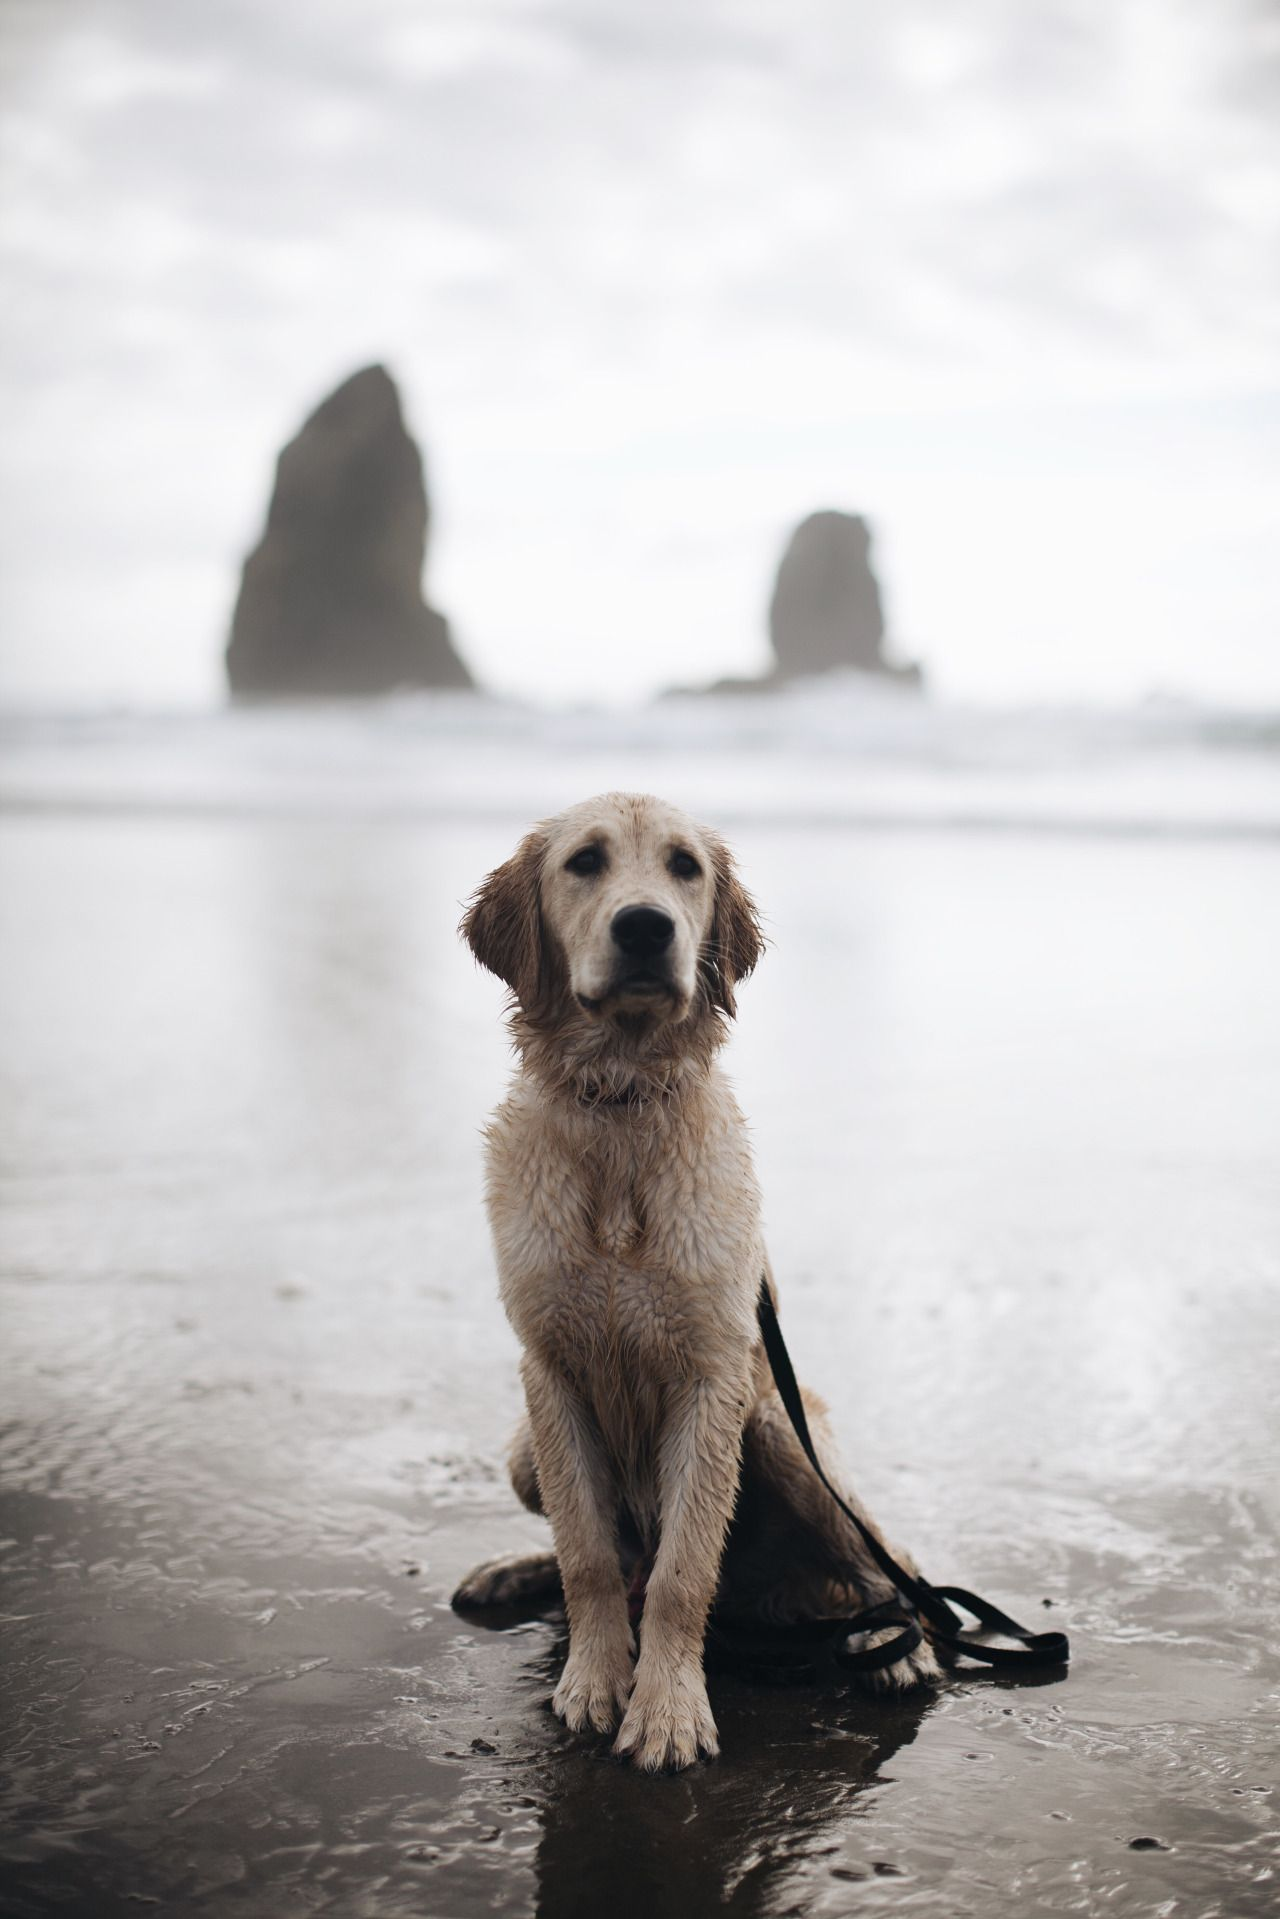 ahounddog Rio, golden retriever puppy. Cannon Beach